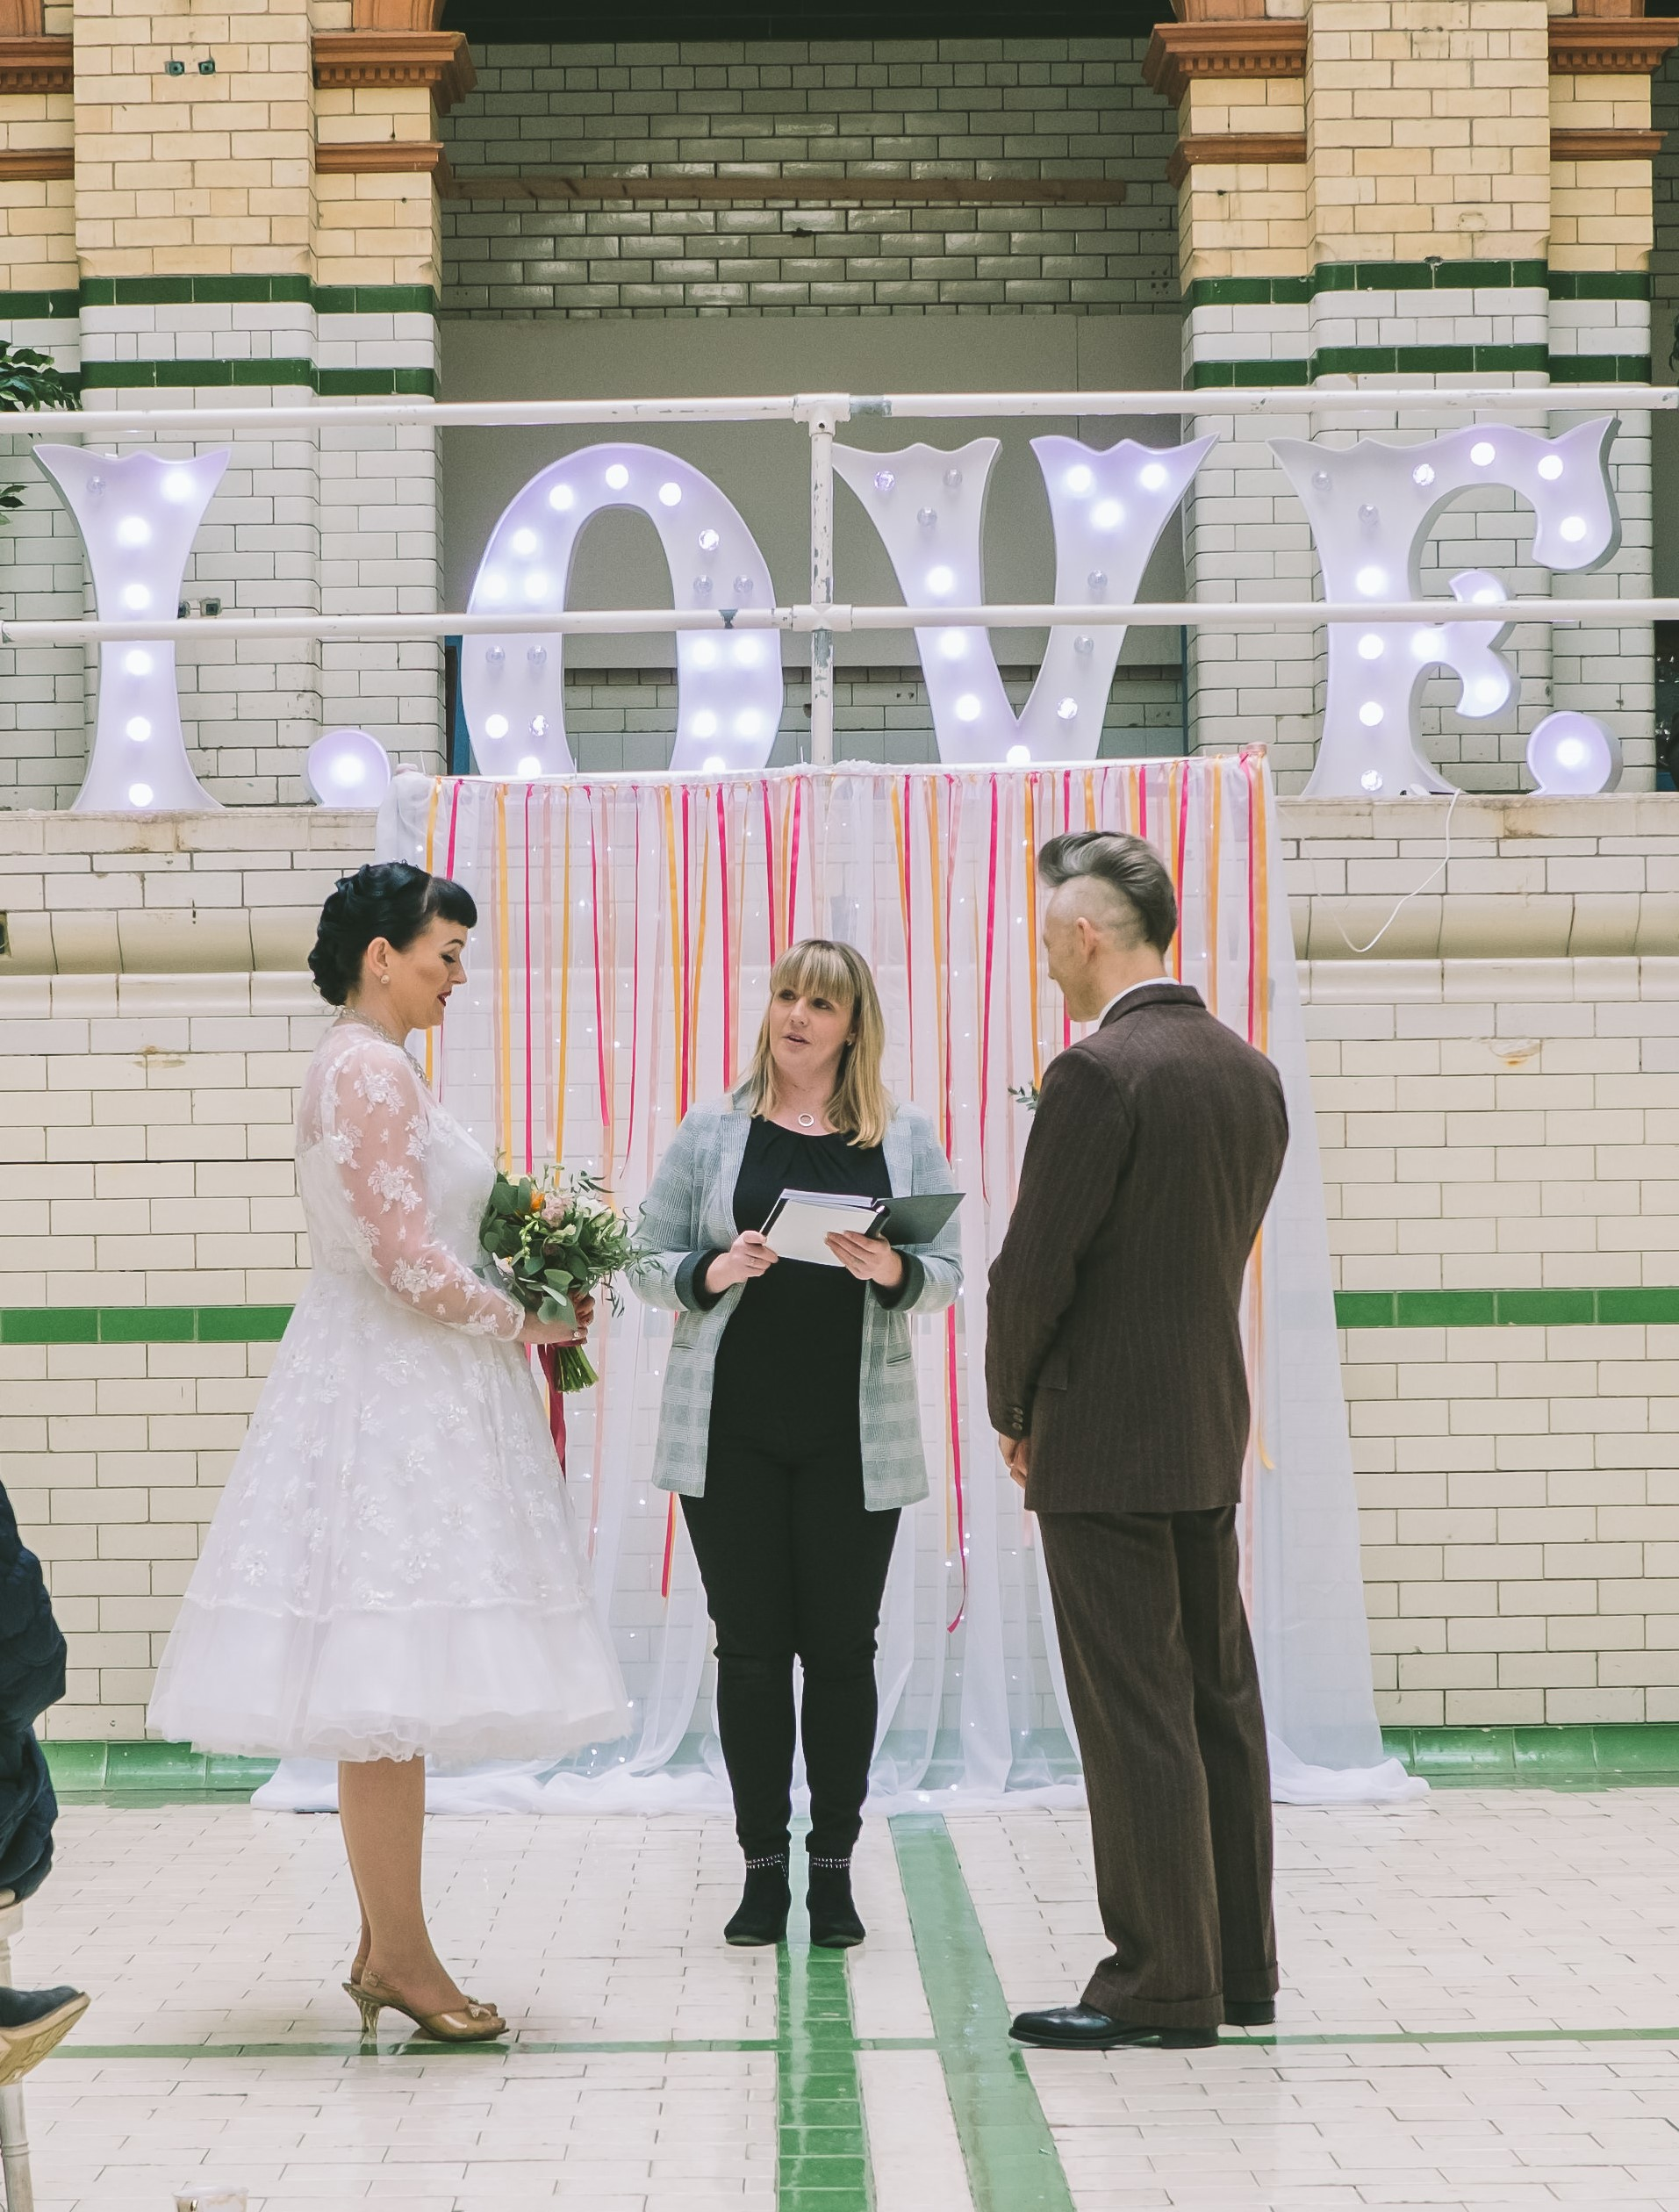 Magpie Wedding Fair, Manchester Victoria Baths - The Fake Wedding